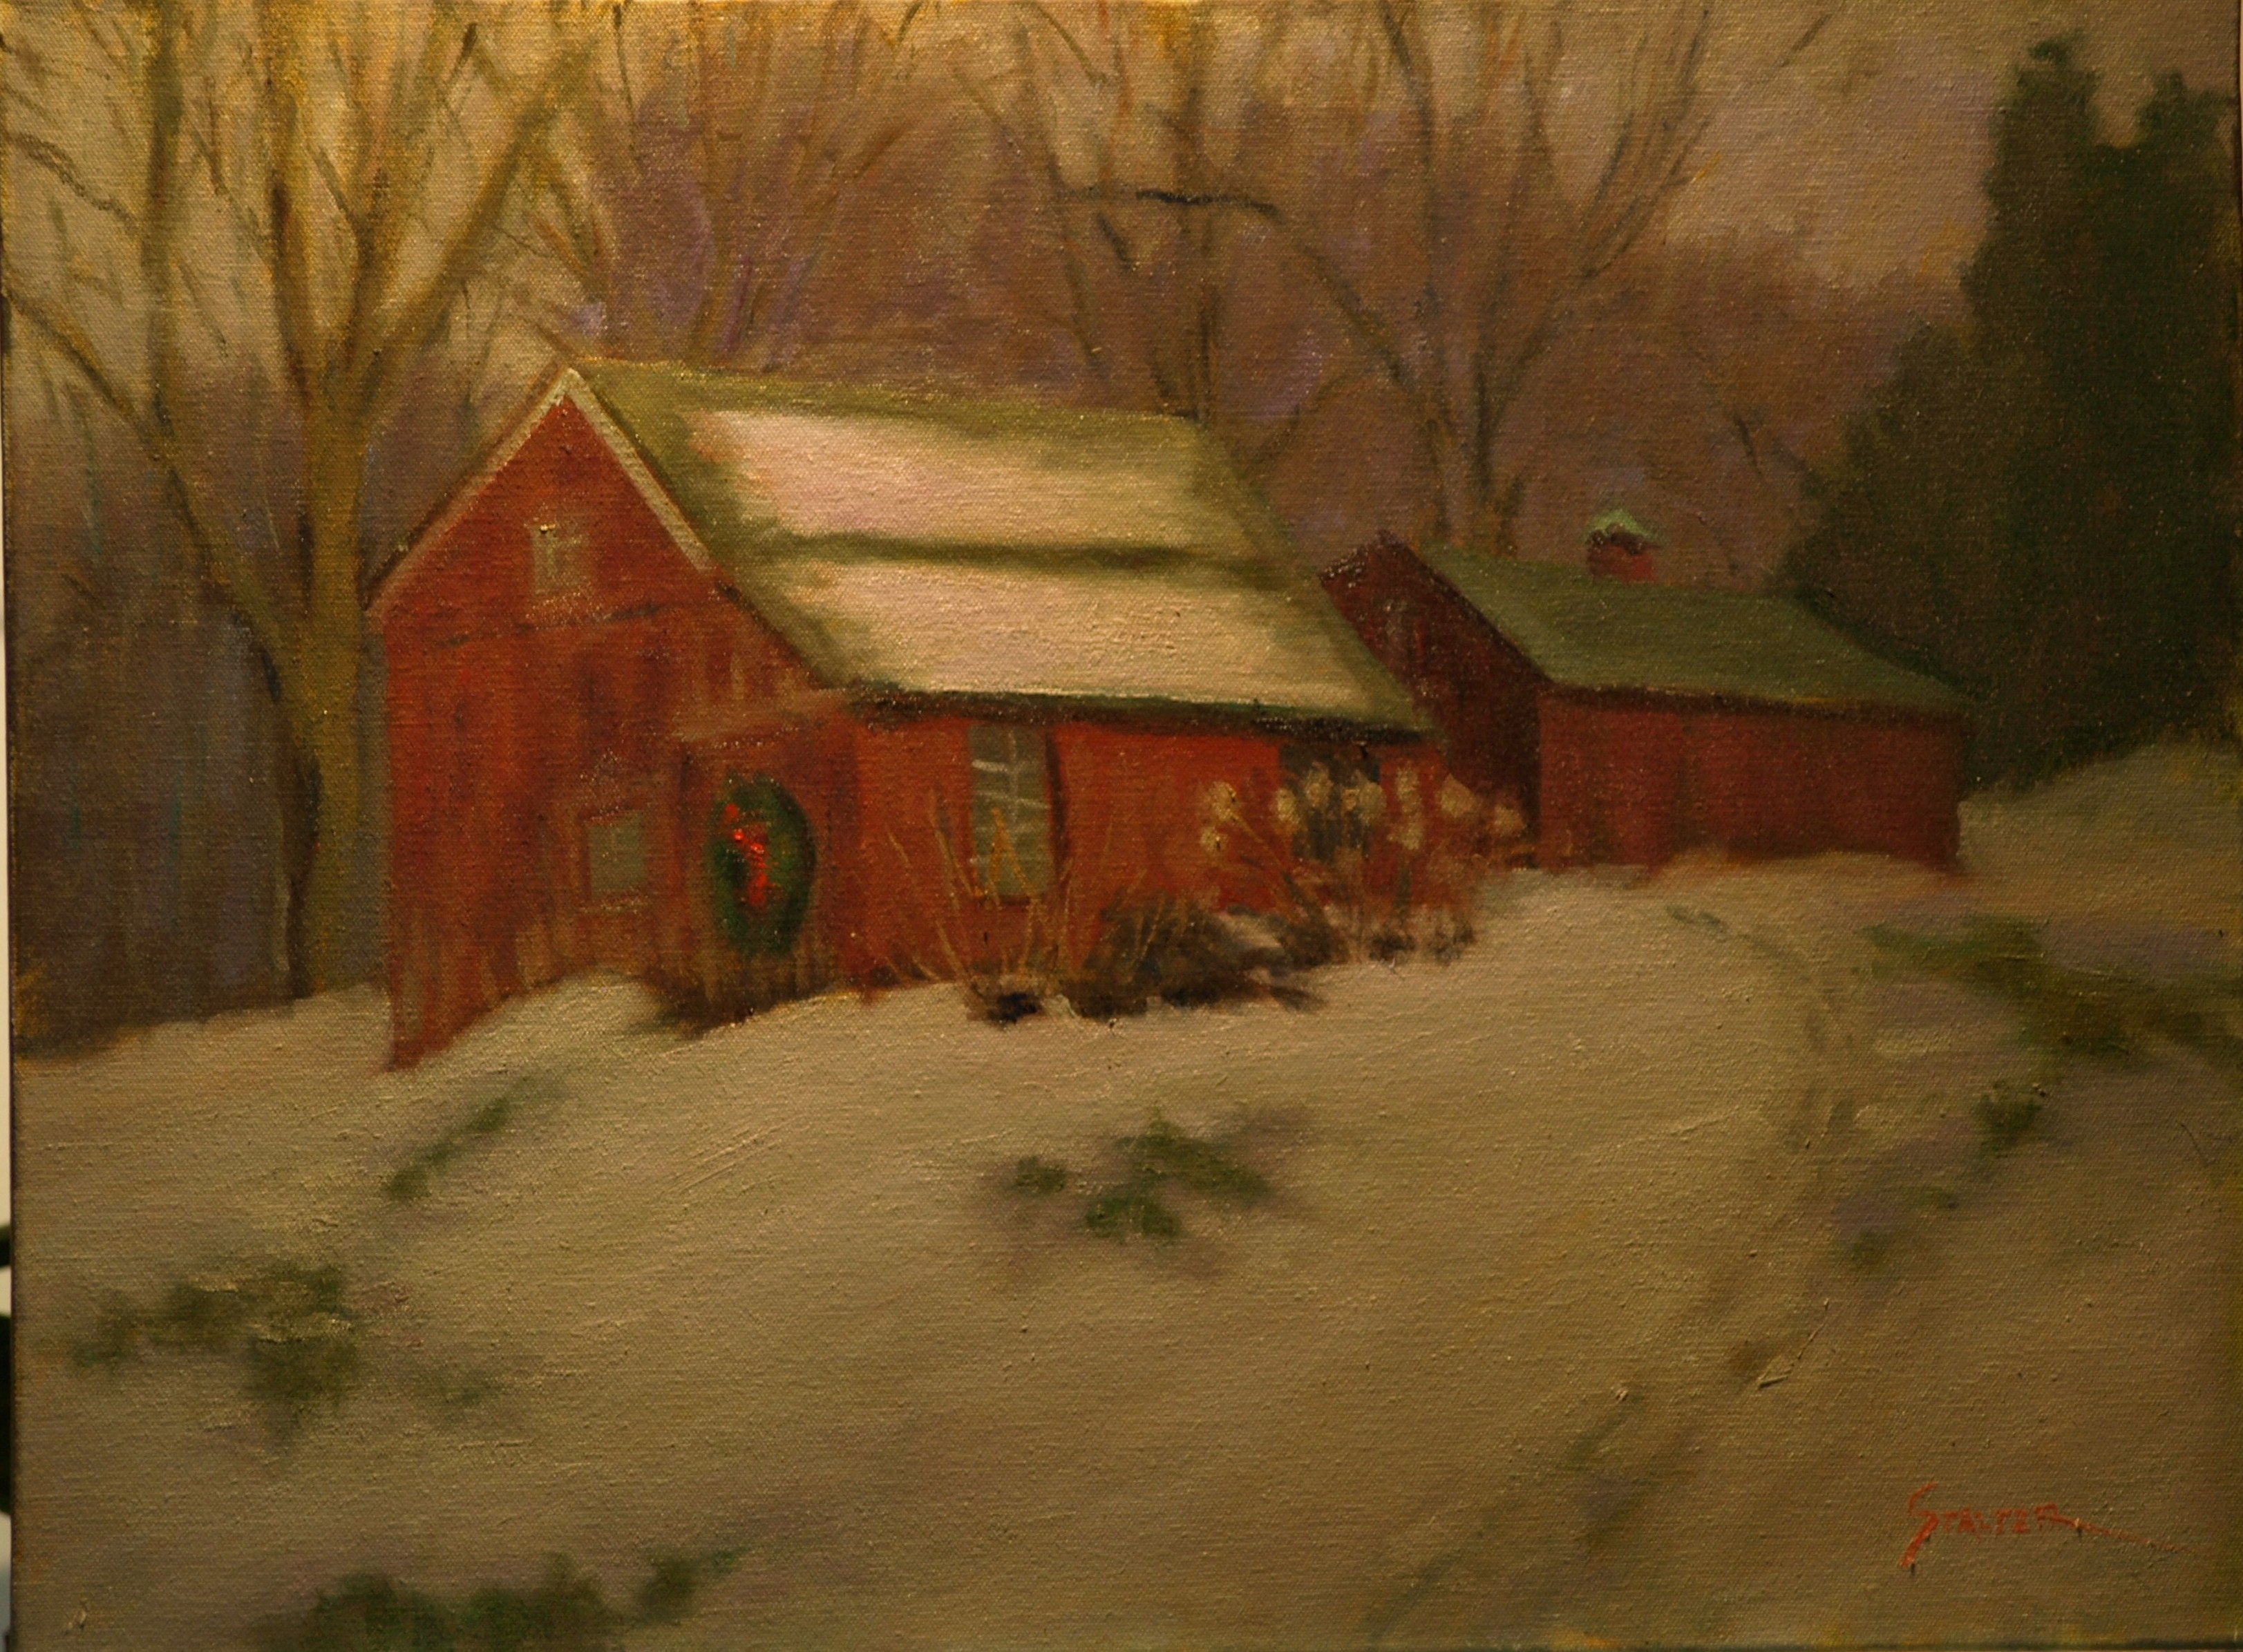 Jeff's Barns in Snow, Oil on Canvas, 18 x 24 Inches, by Richard Stalter, $650